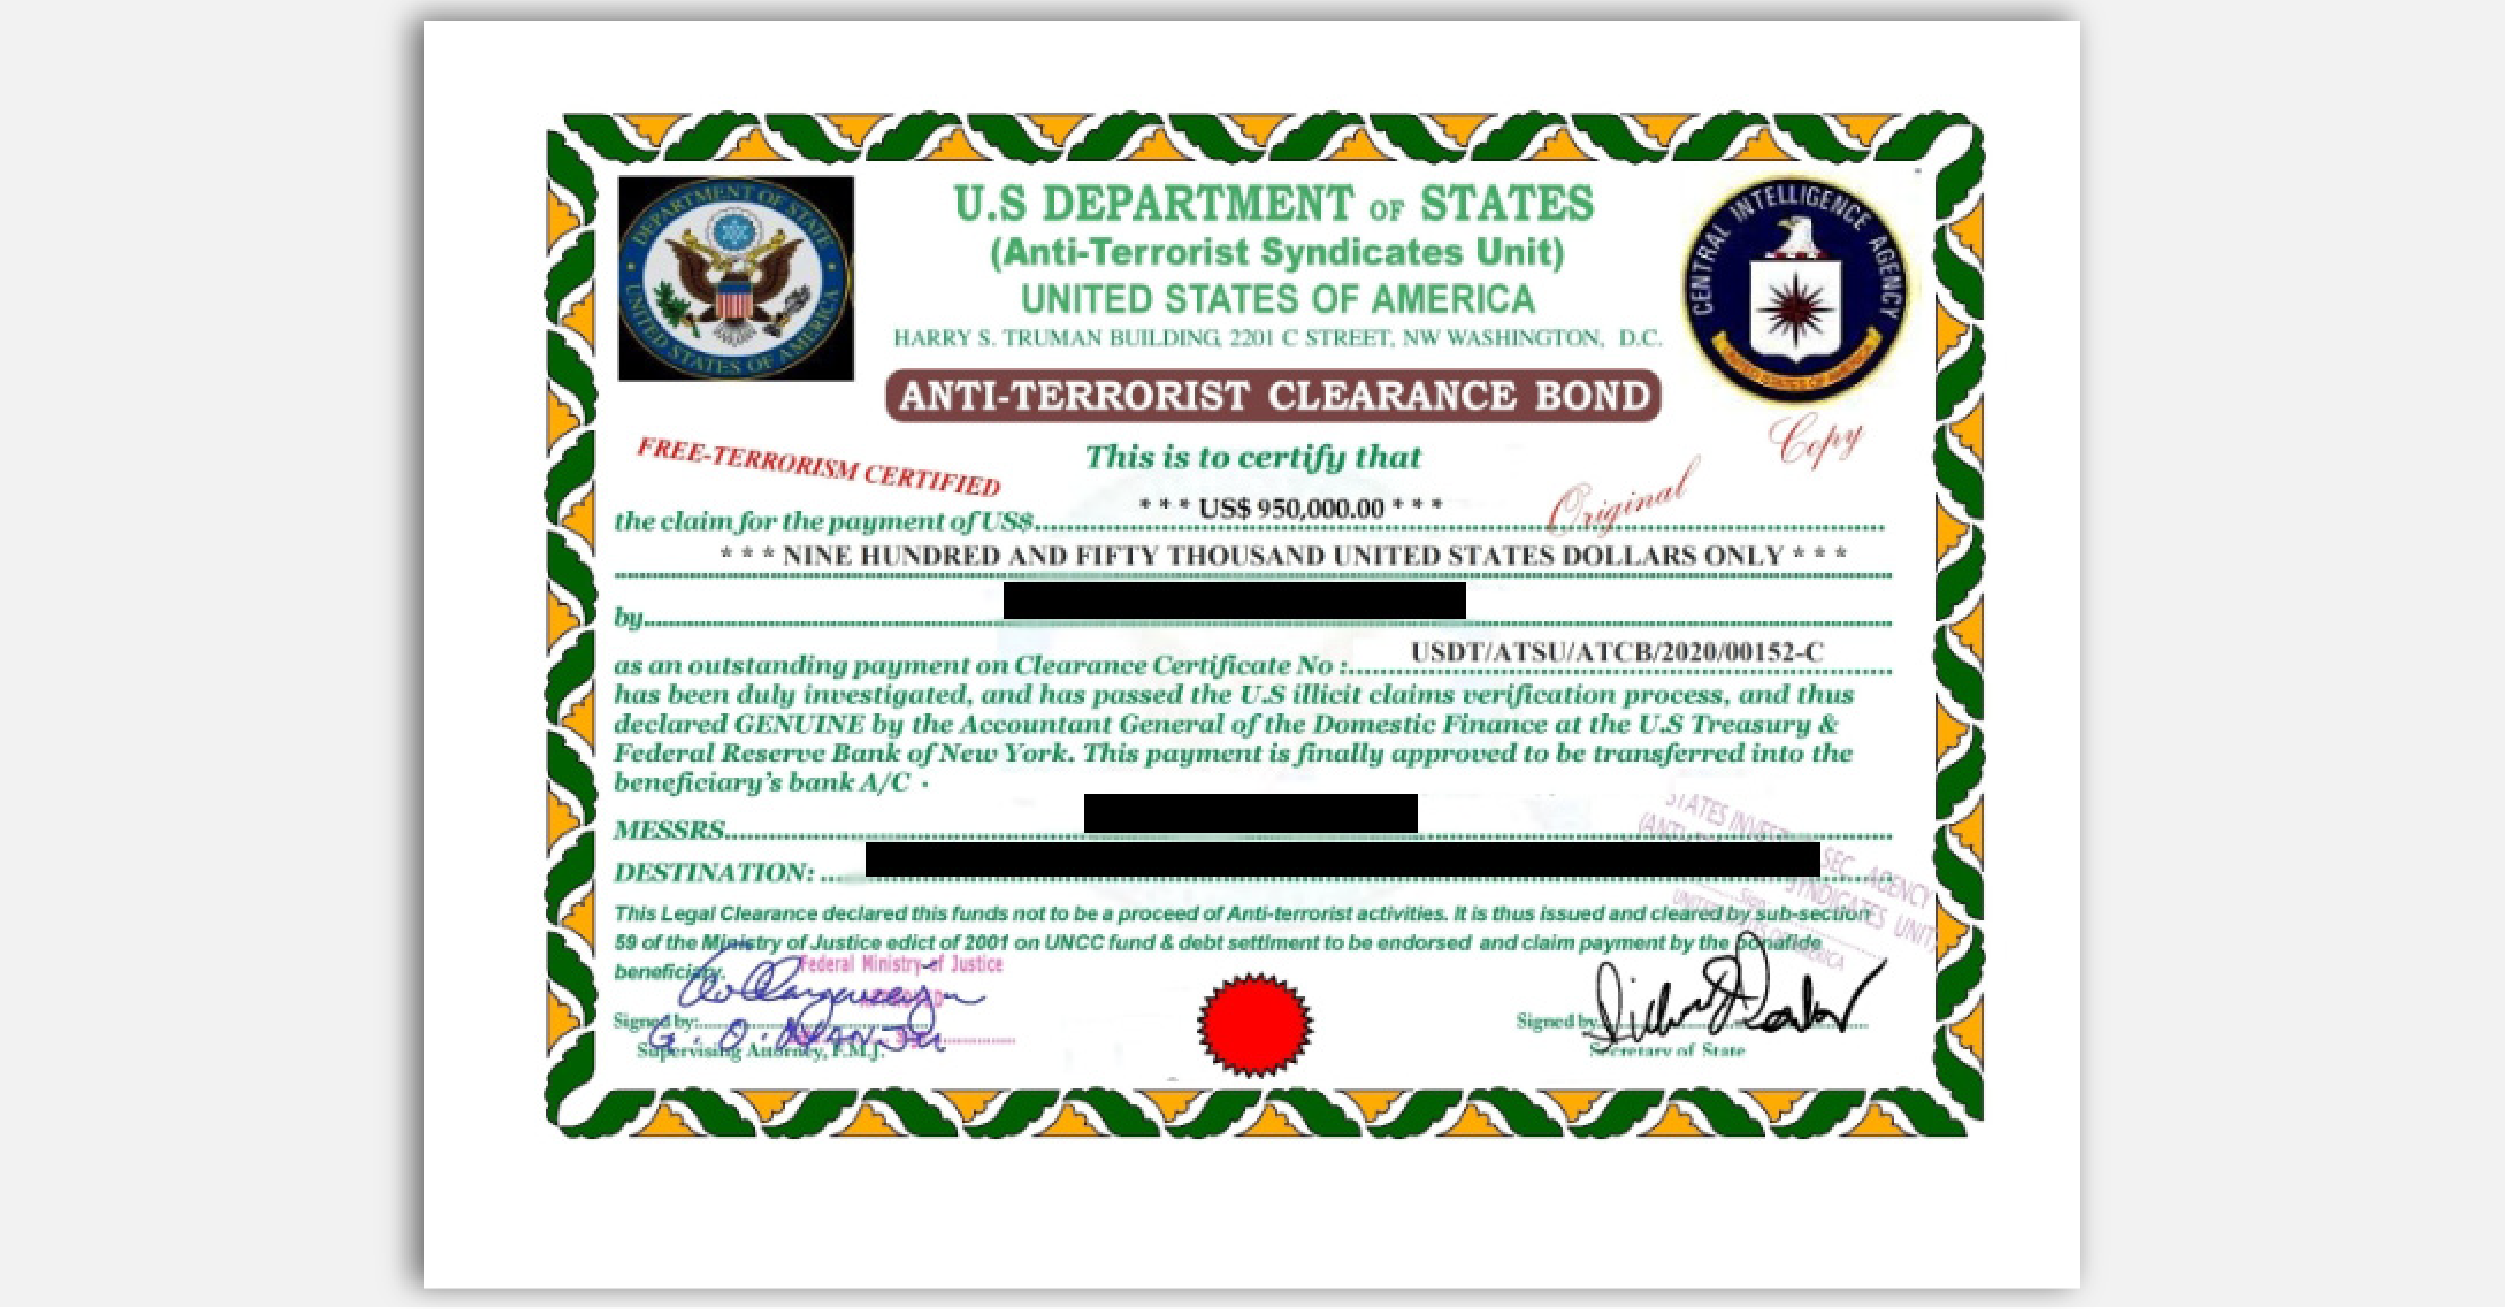 FTC impersonator scam fake State Dept. certificate